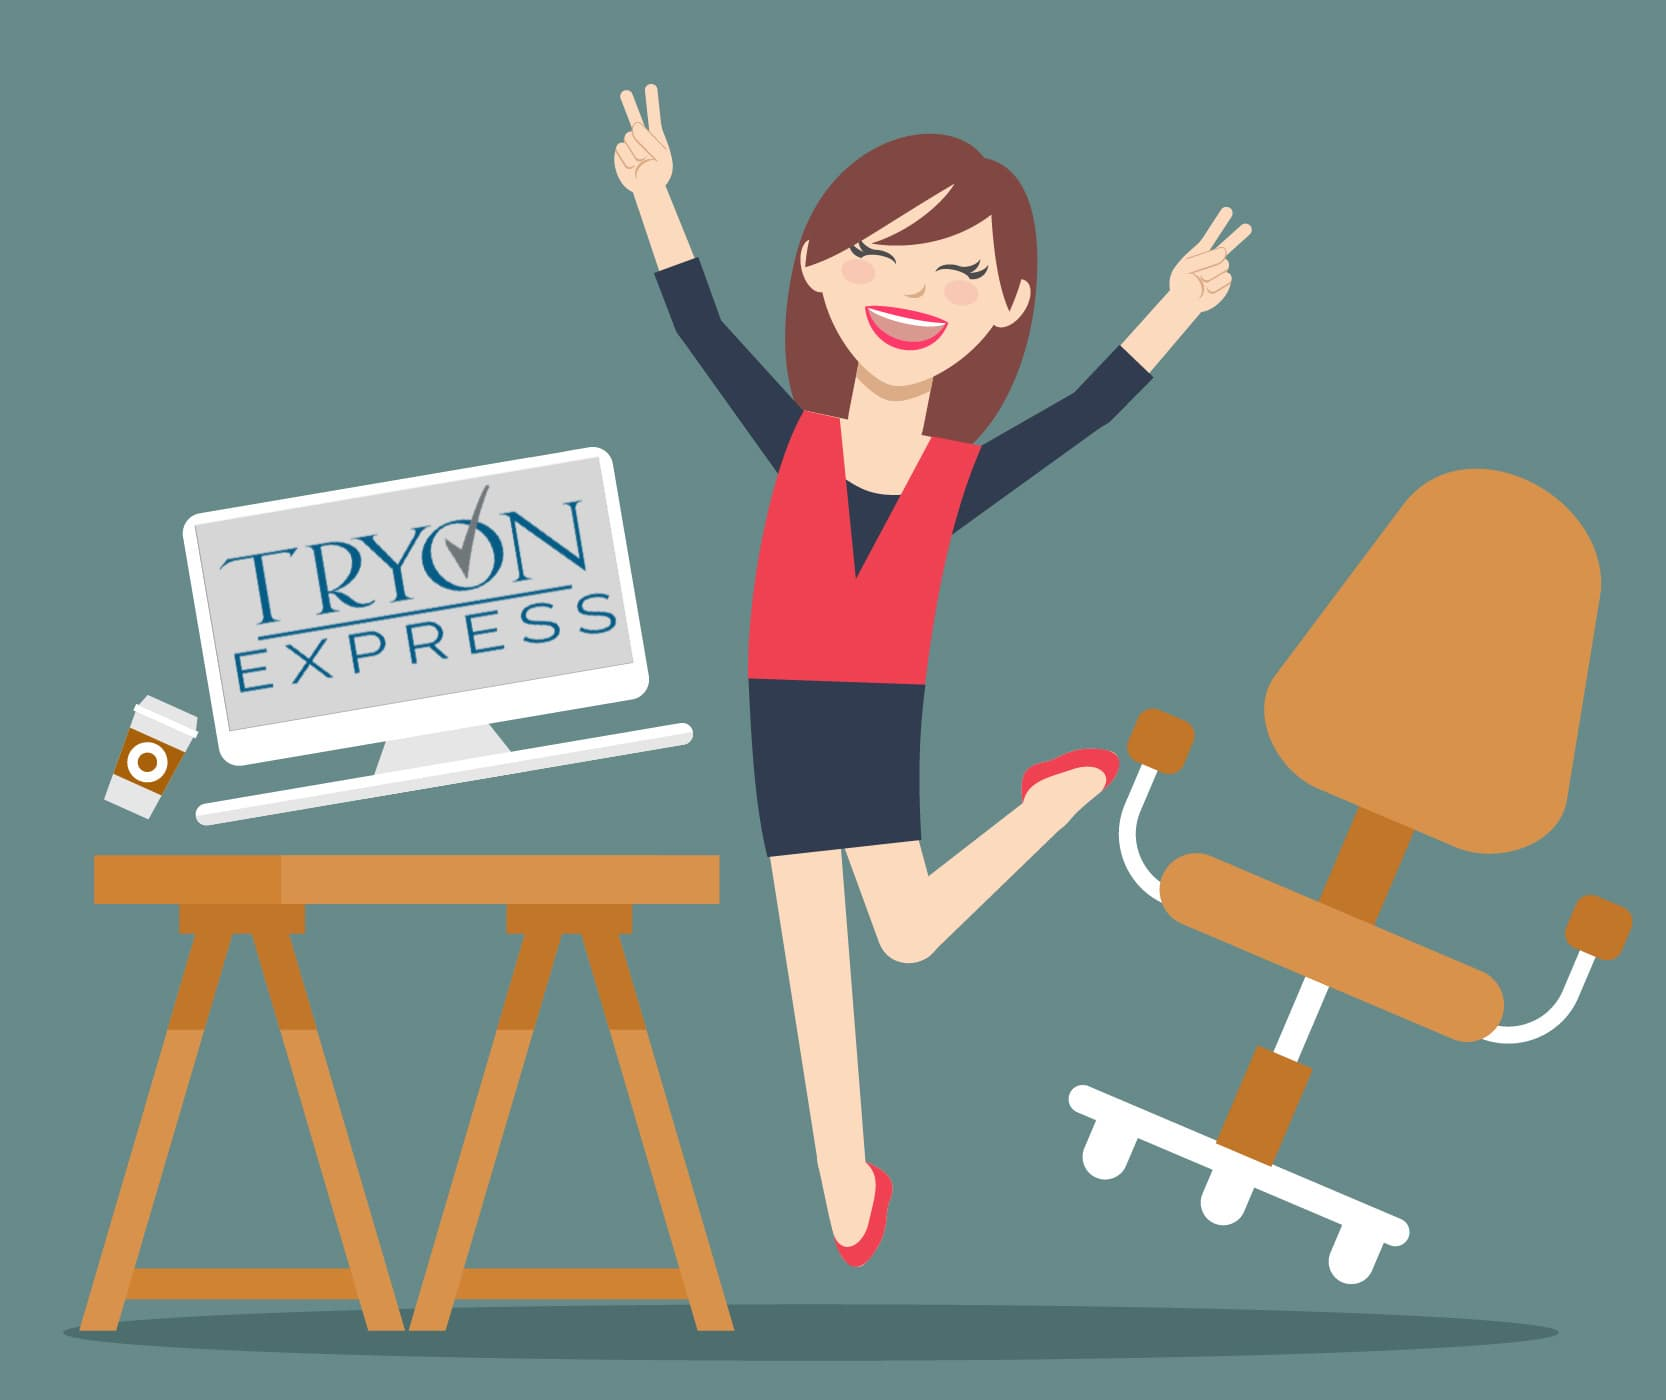 happy woman tryon express